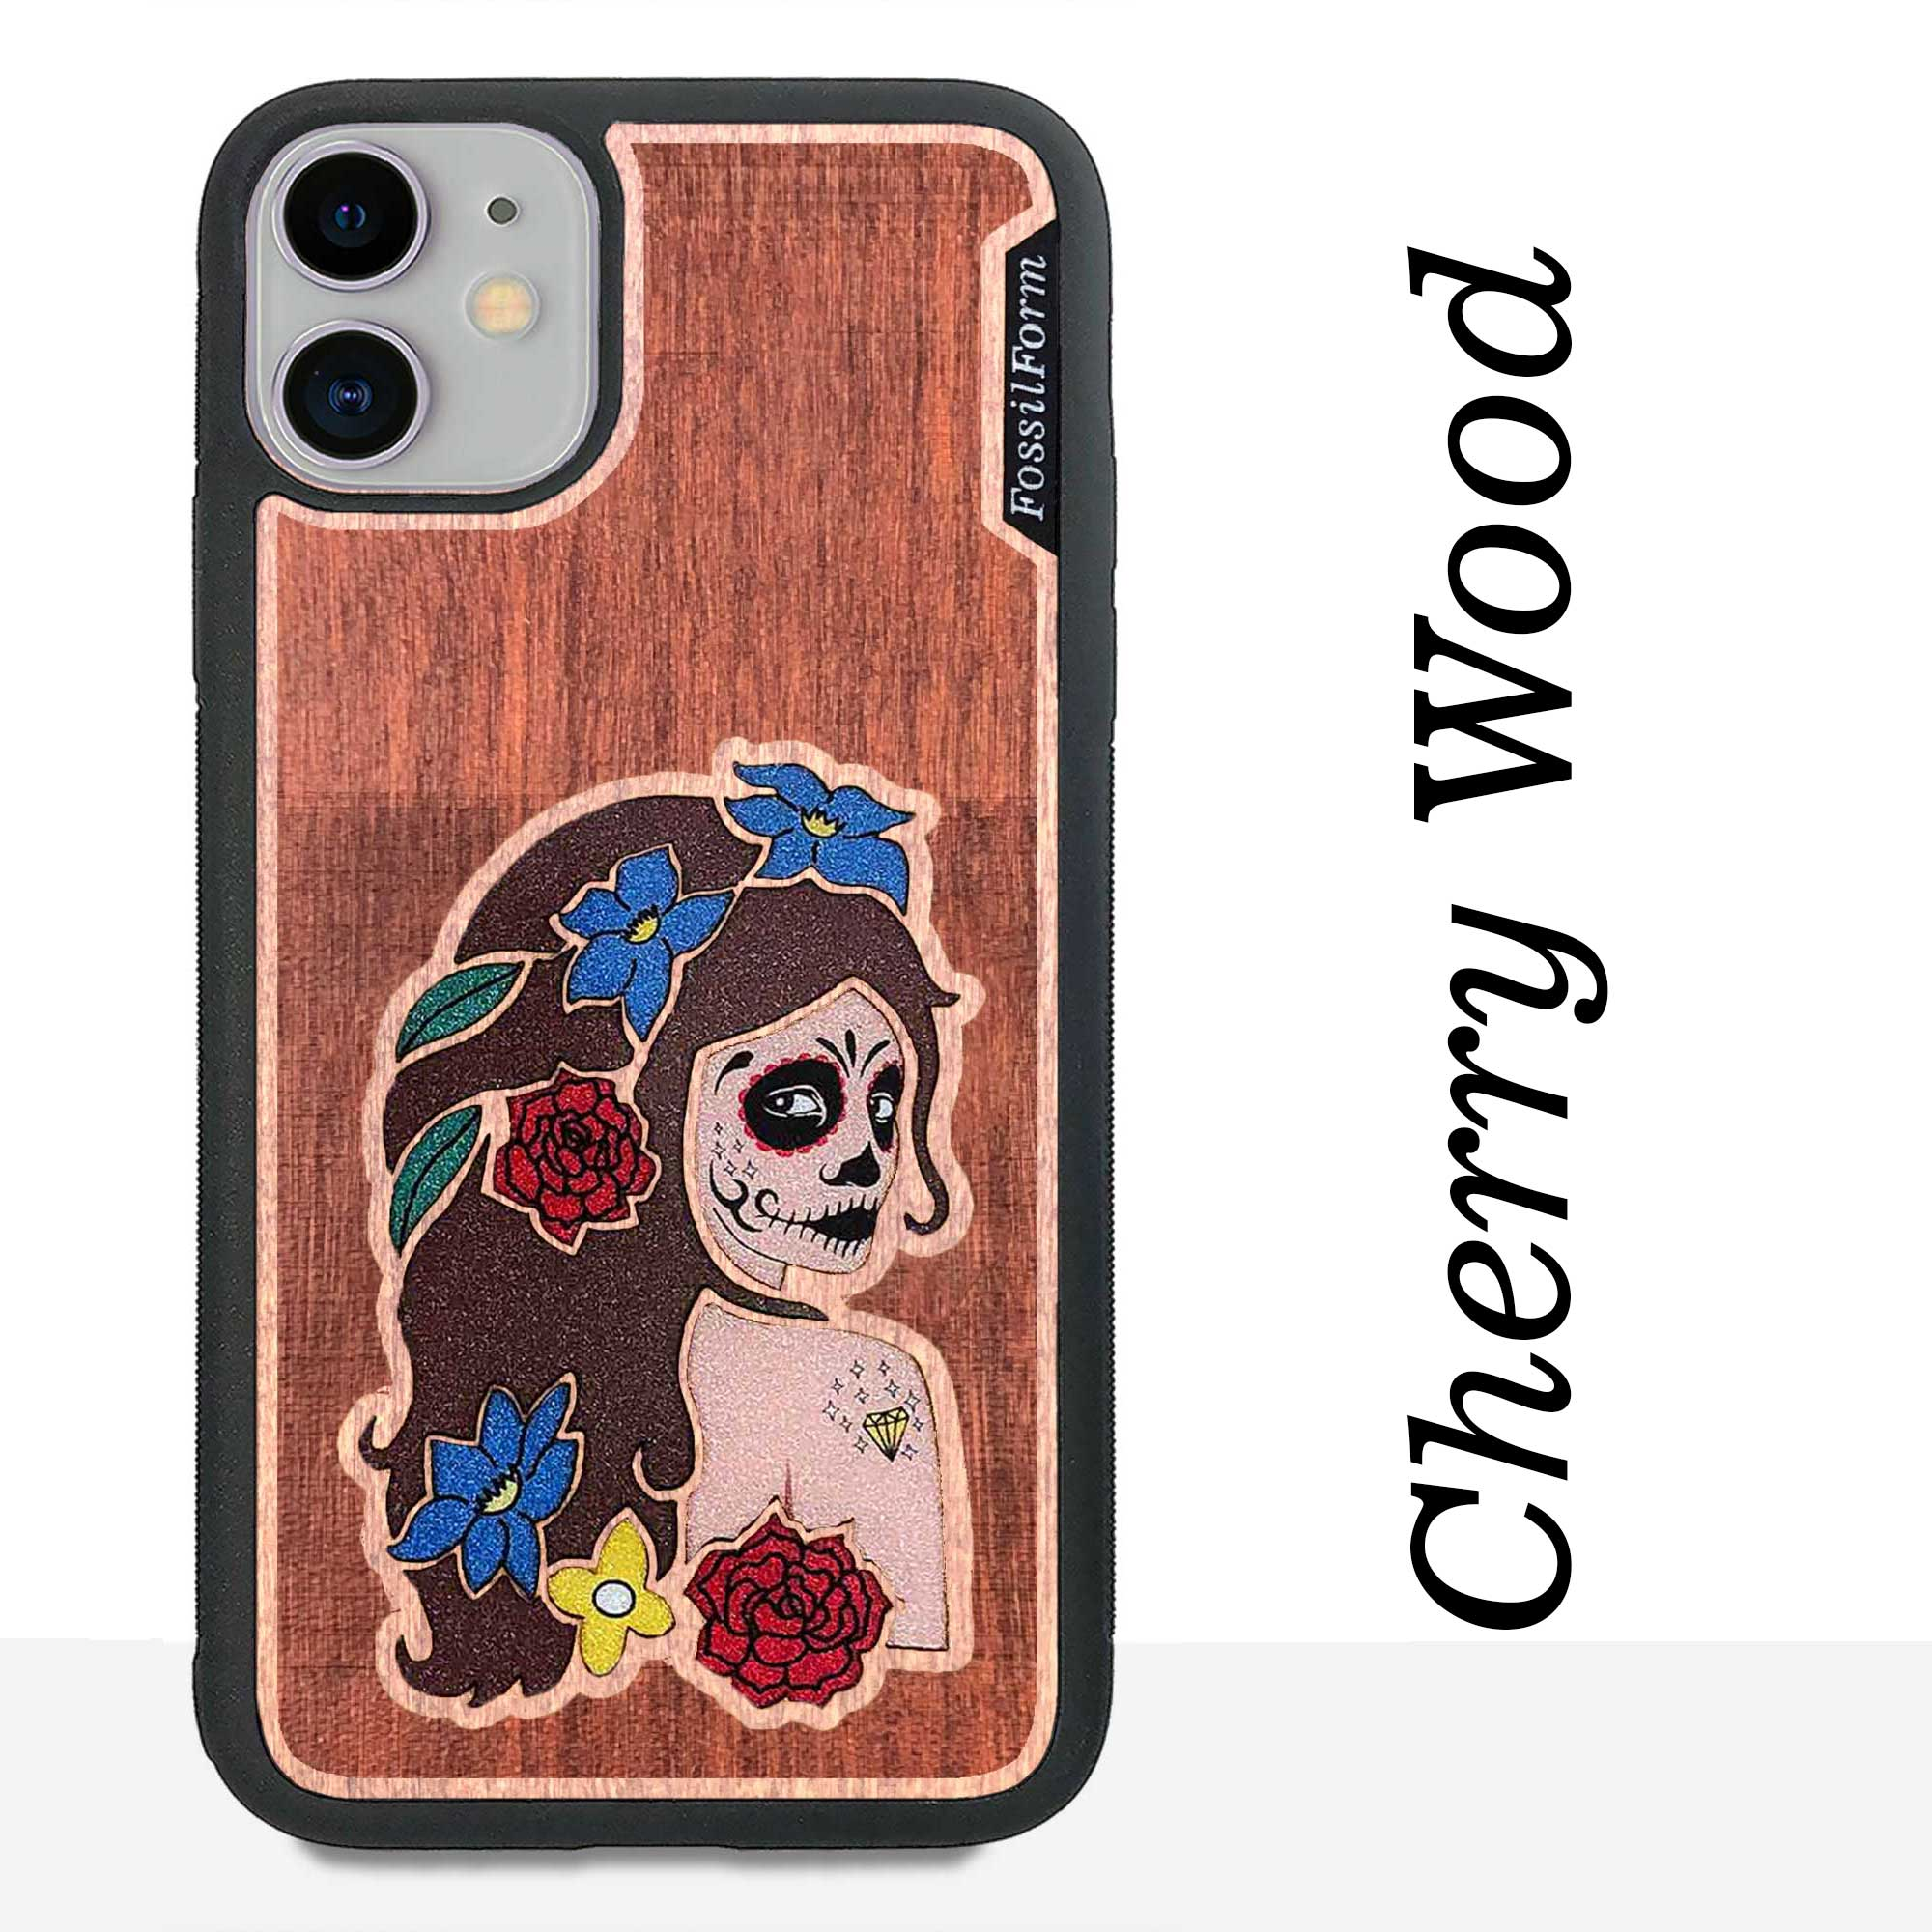 Day of the Dead Girl - Engraved Wood & Resin Case - Black